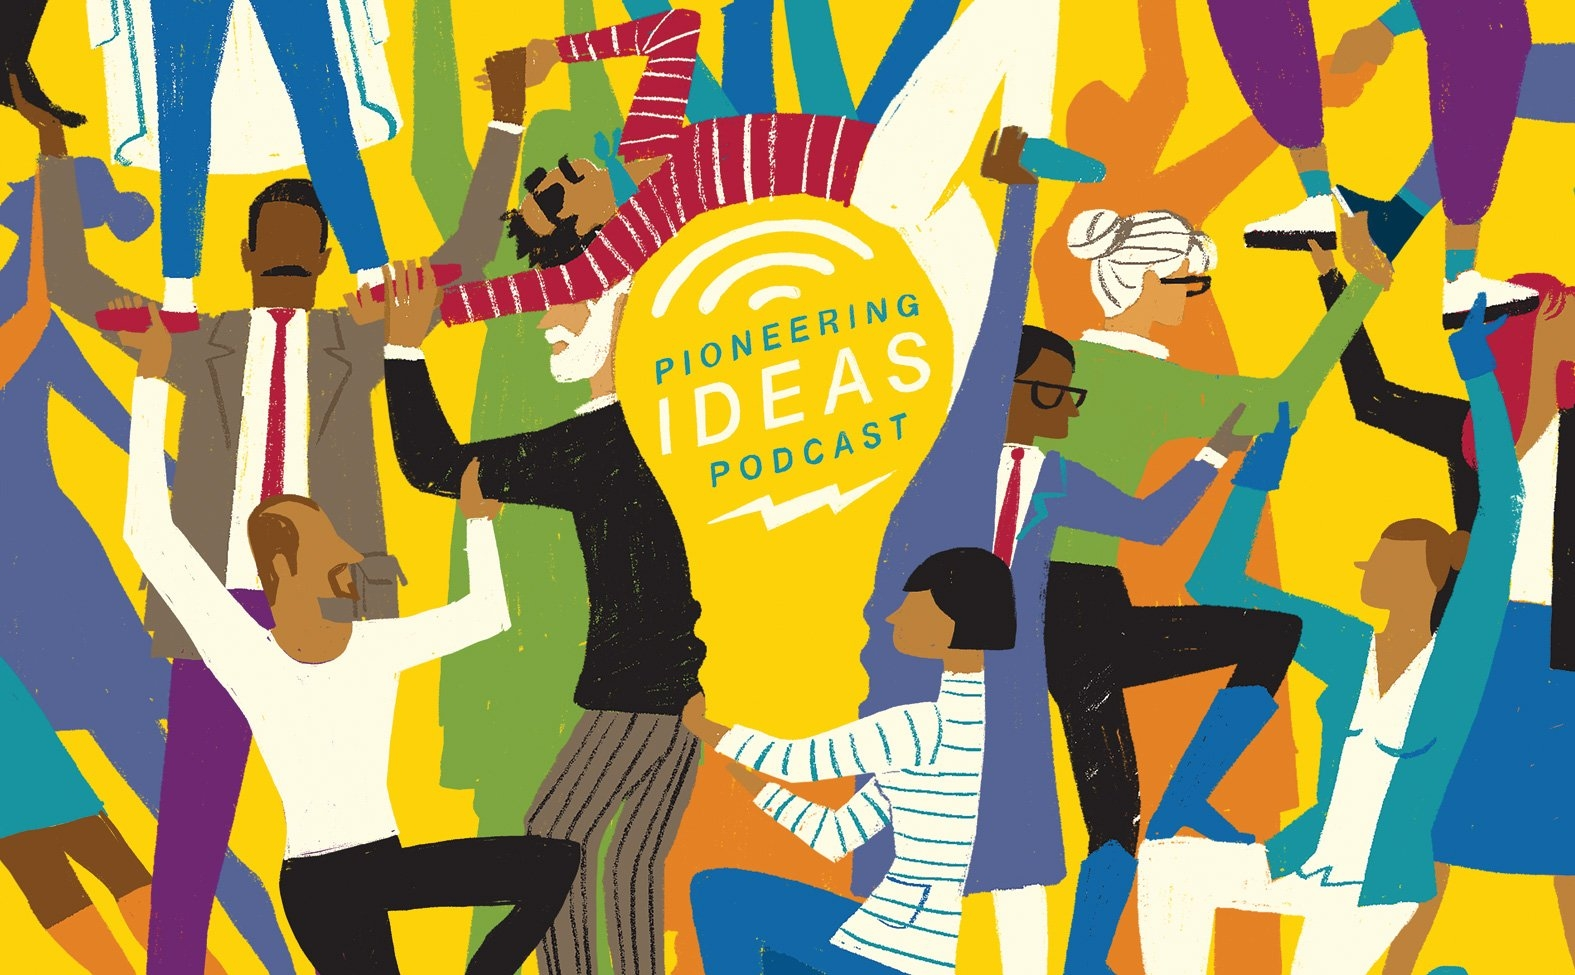 RWJF Pioneering Ideas Podcast Editorial Art